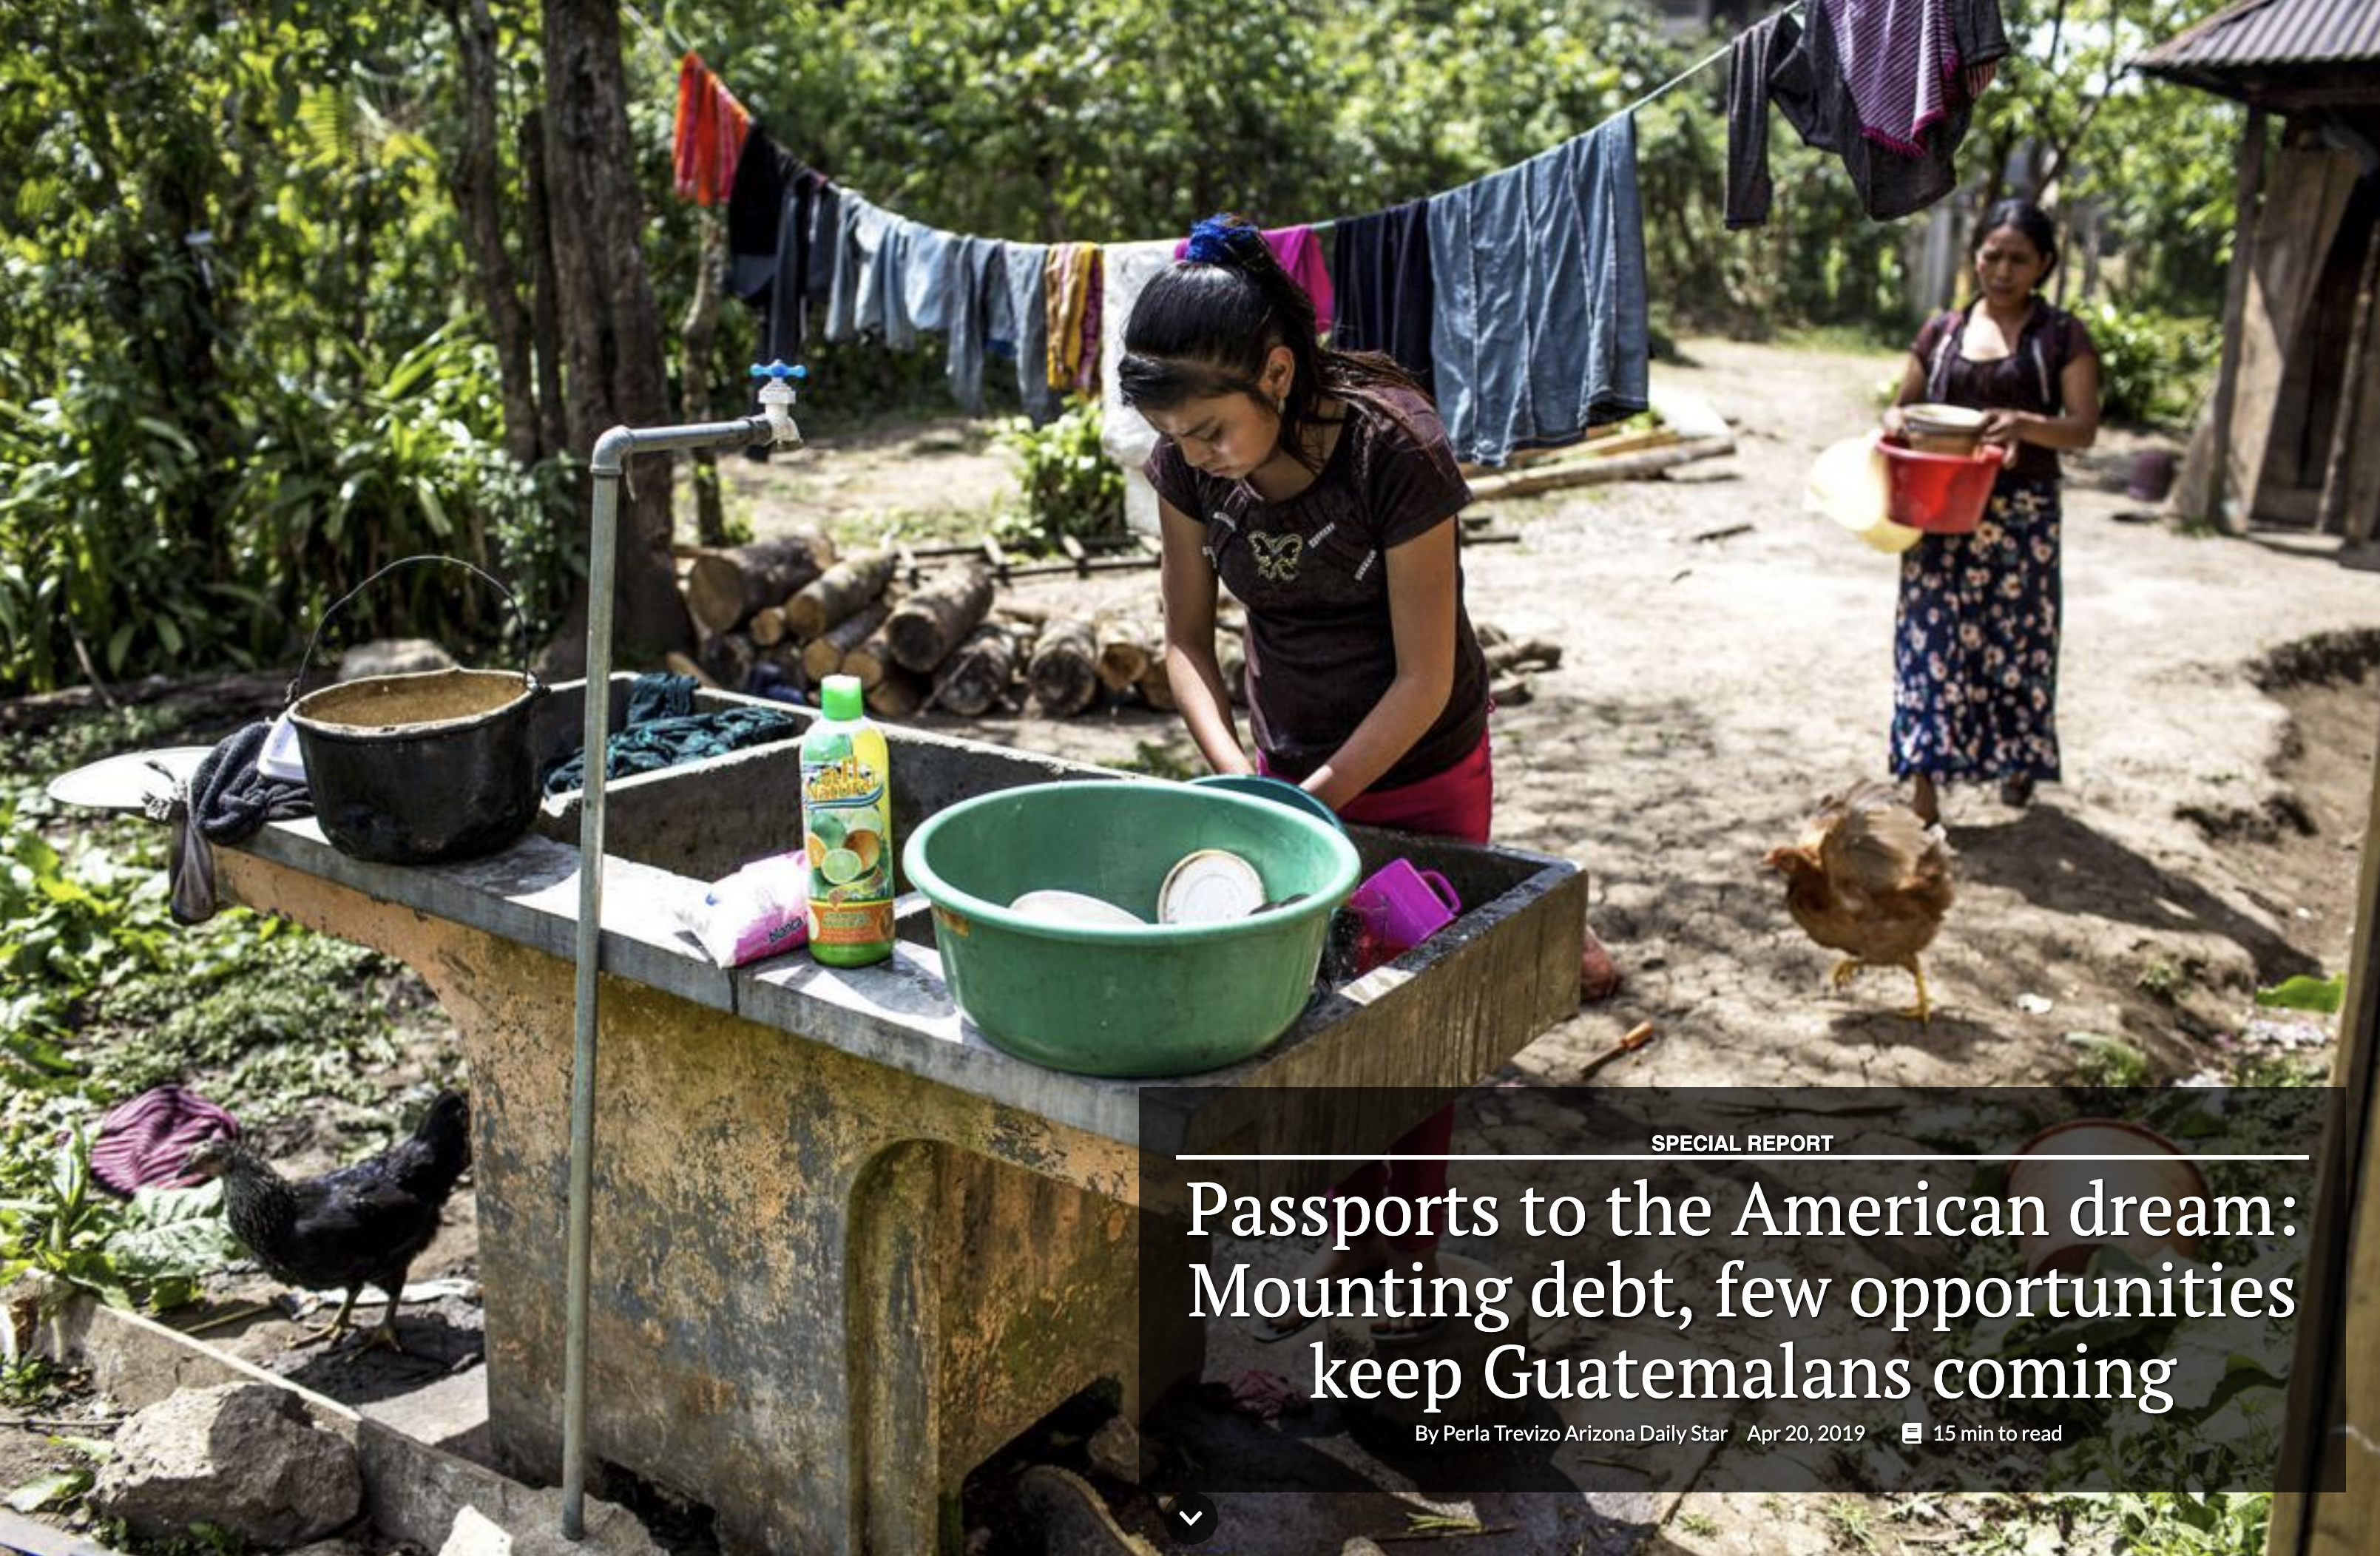 Candelaria López, 15, washes dishes in her front yard in Bulej. Image by Simone Dalmasso/Arizona Daily Star. Guatemala, 2019.